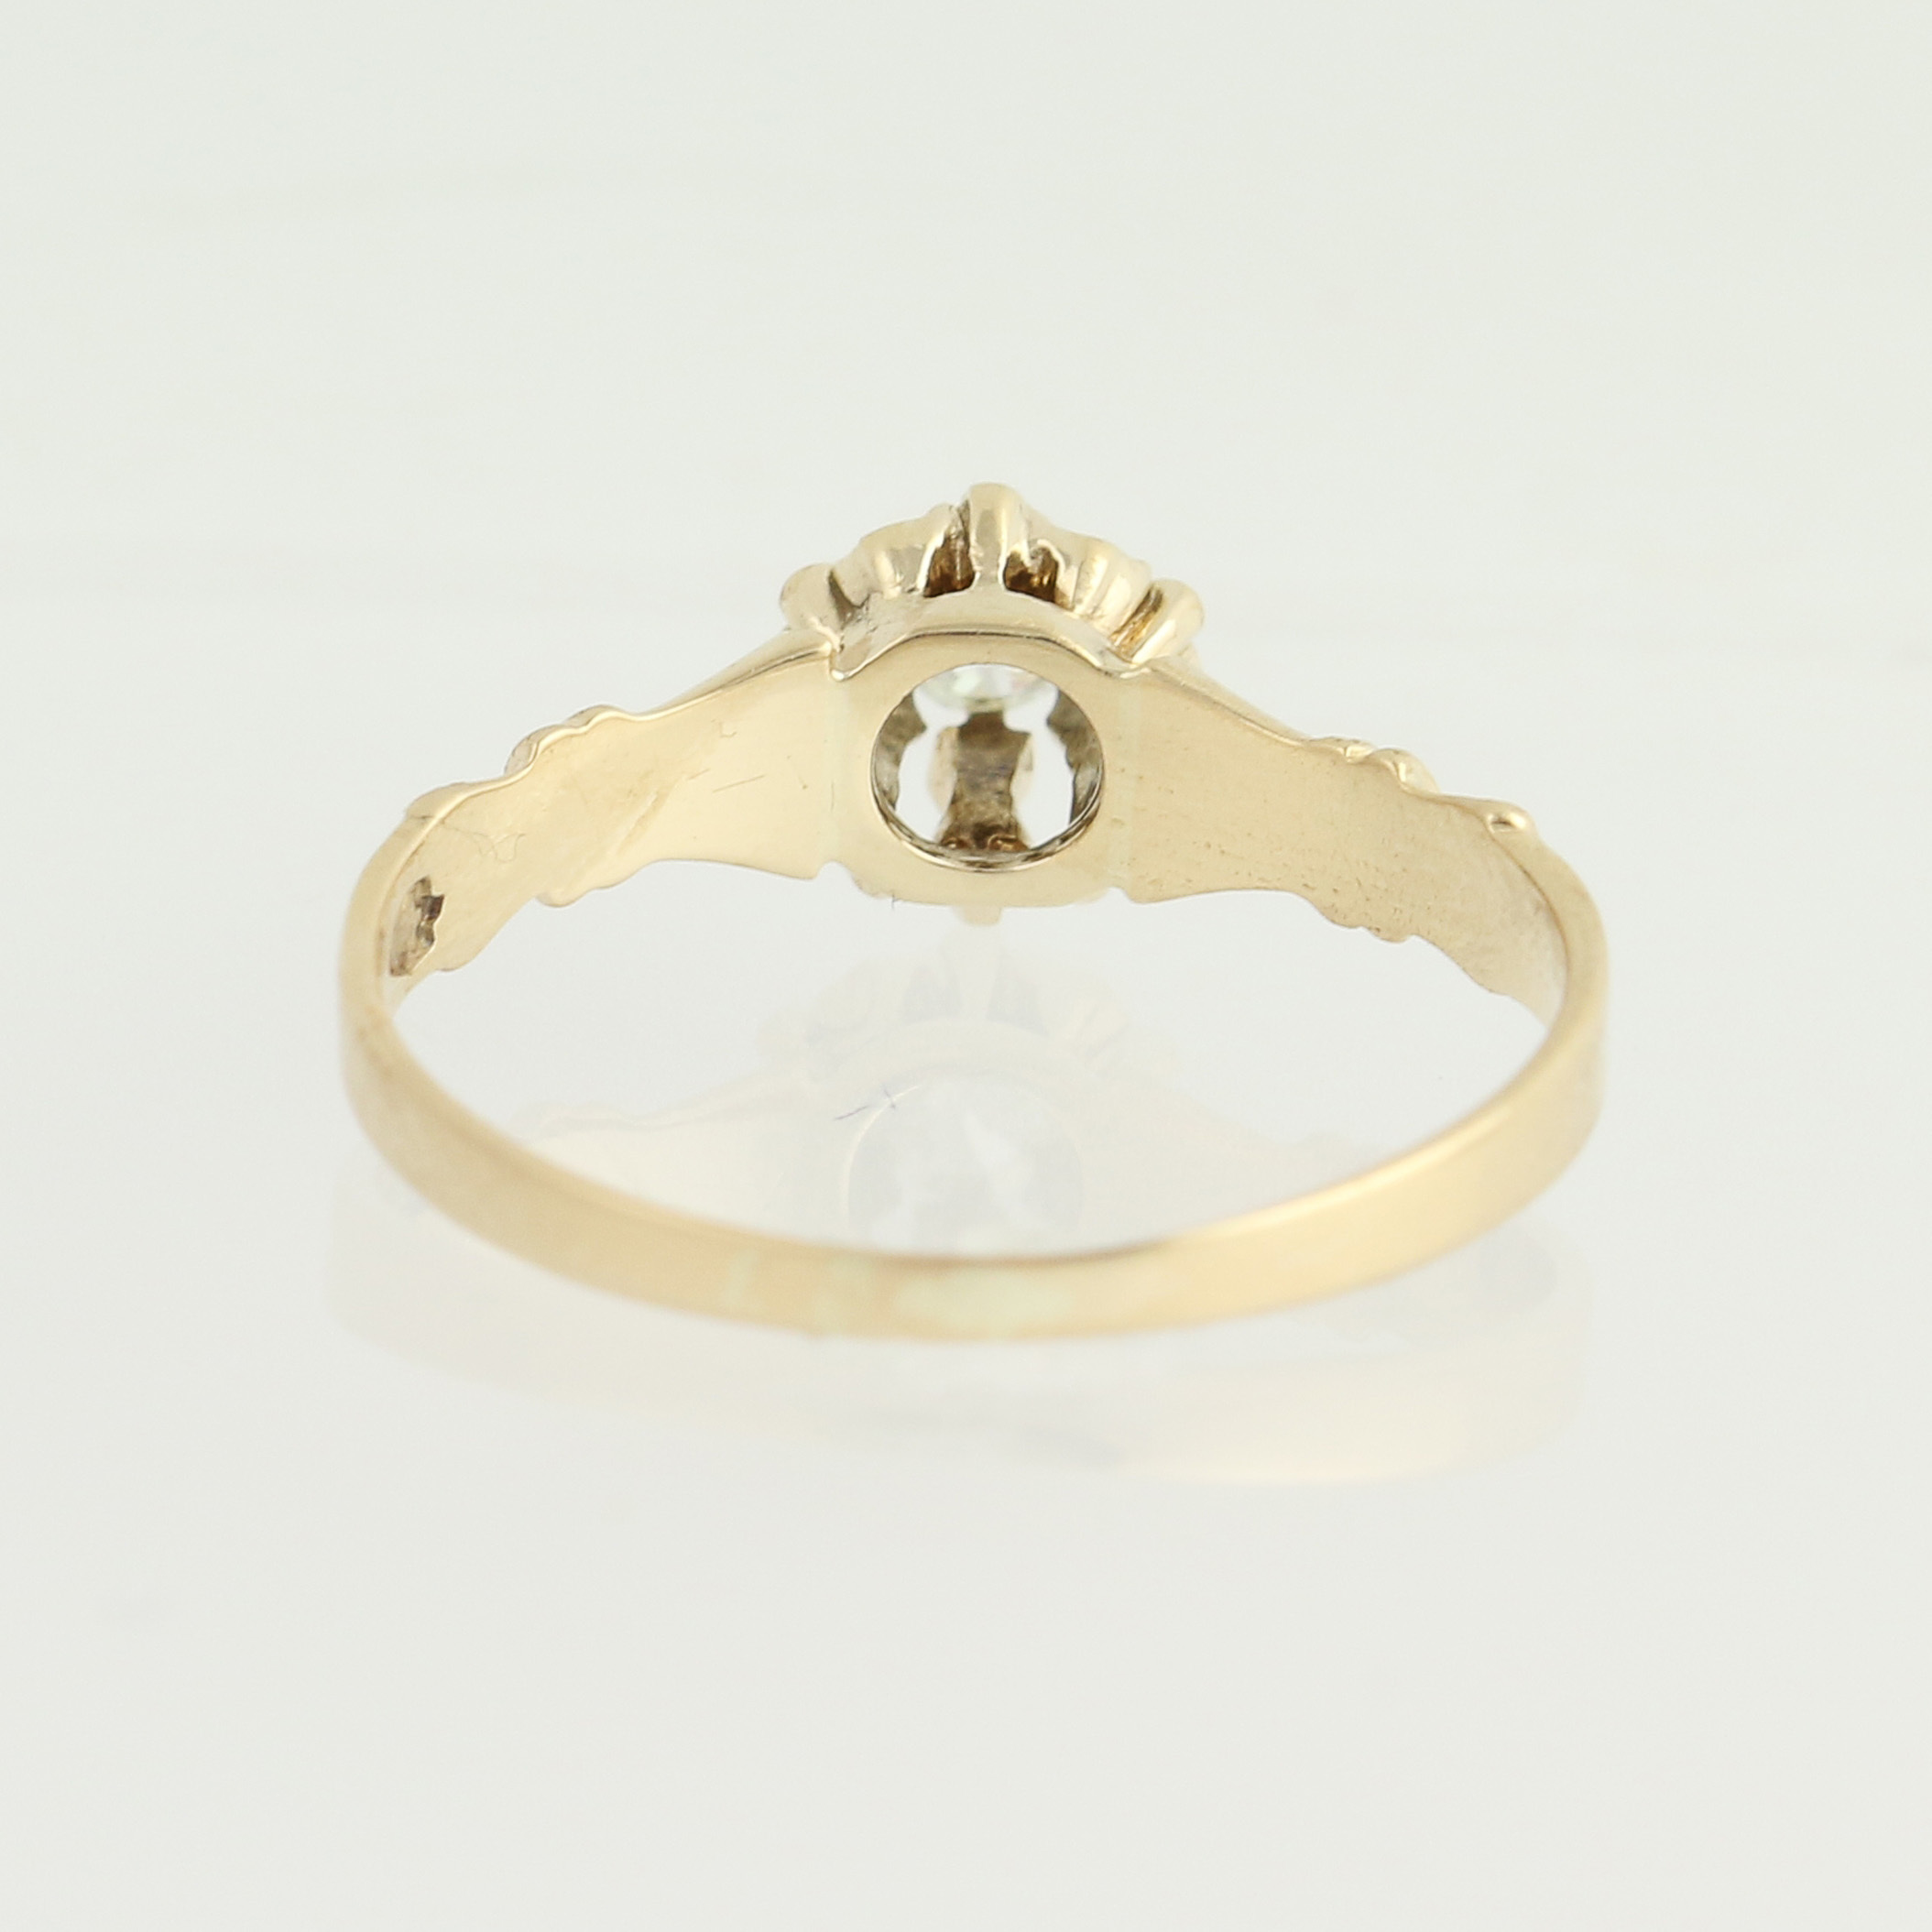 victorian diamond engagement ring 14k yellow gold. Black Bedroom Furniture Sets. Home Design Ideas